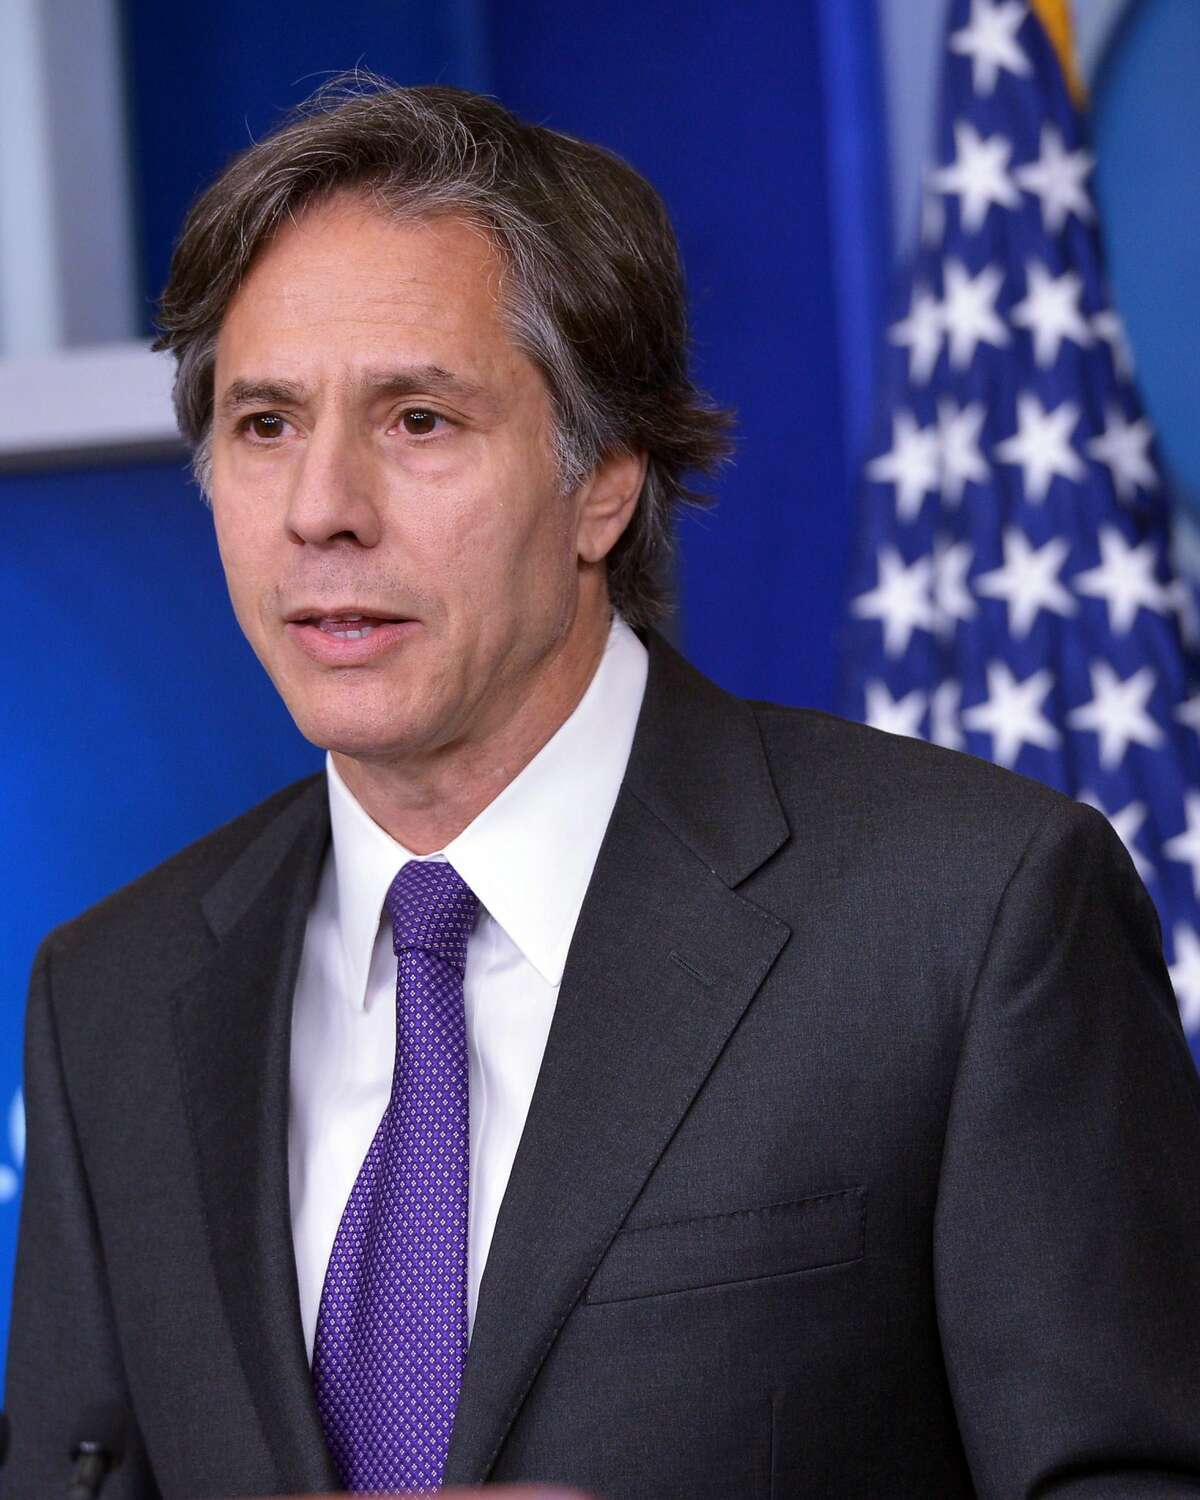 Former Obama administration Deputy National Security Advisor Tony Blinken is among prominent New Yorkers said to be on the list of candidates for President-elect Joe Biden's administration. AFP PHOTO/Mandel NGANMANDEL NGAN/AFP/Getty Images